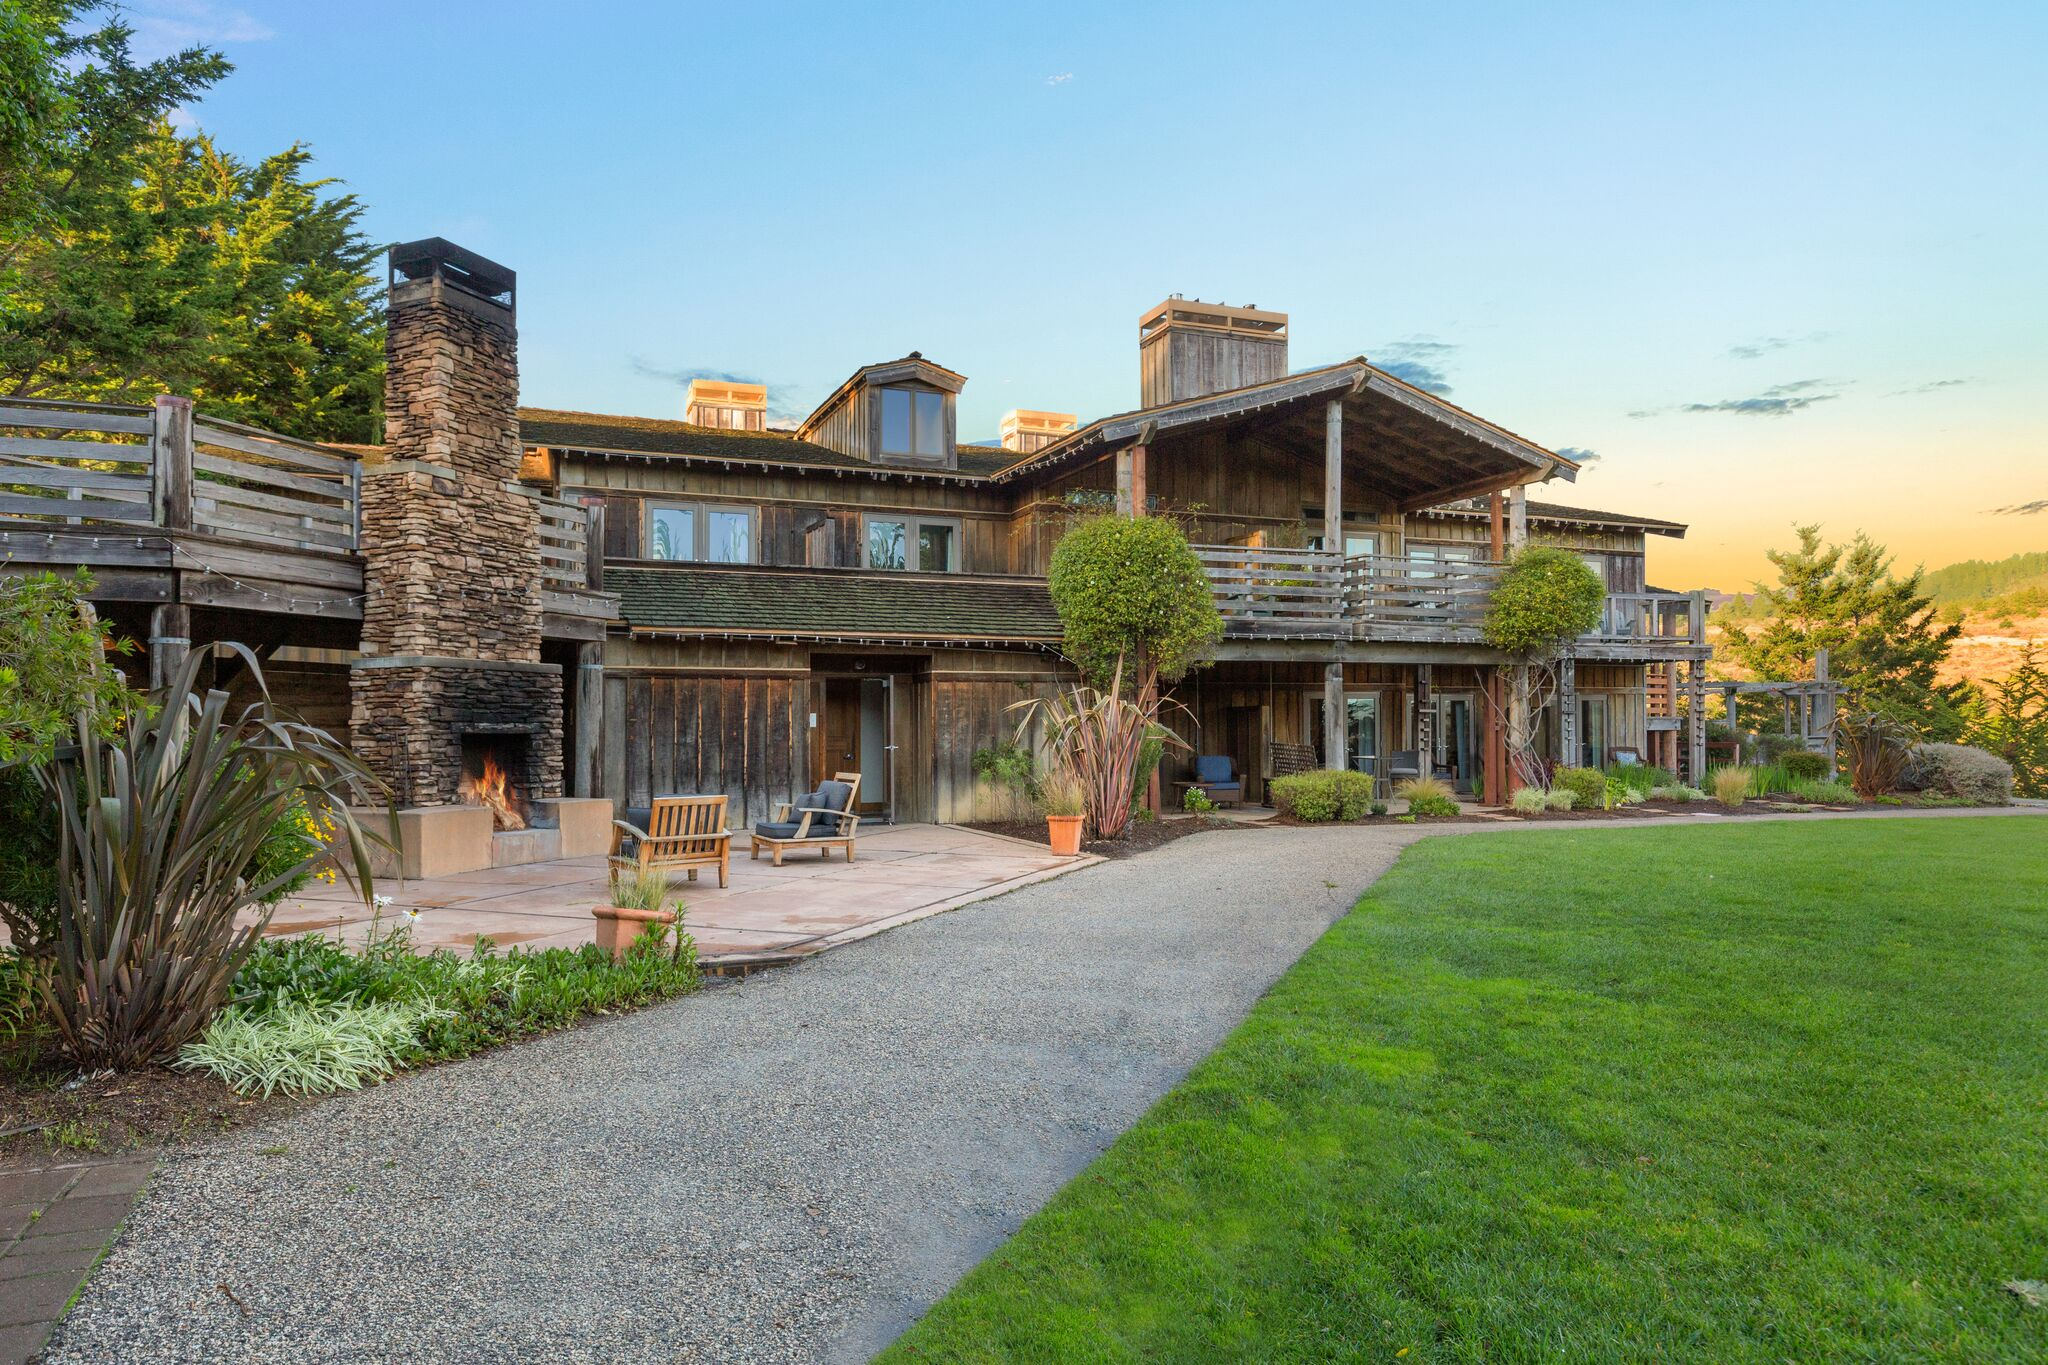 Costanoa Lodge and Resort